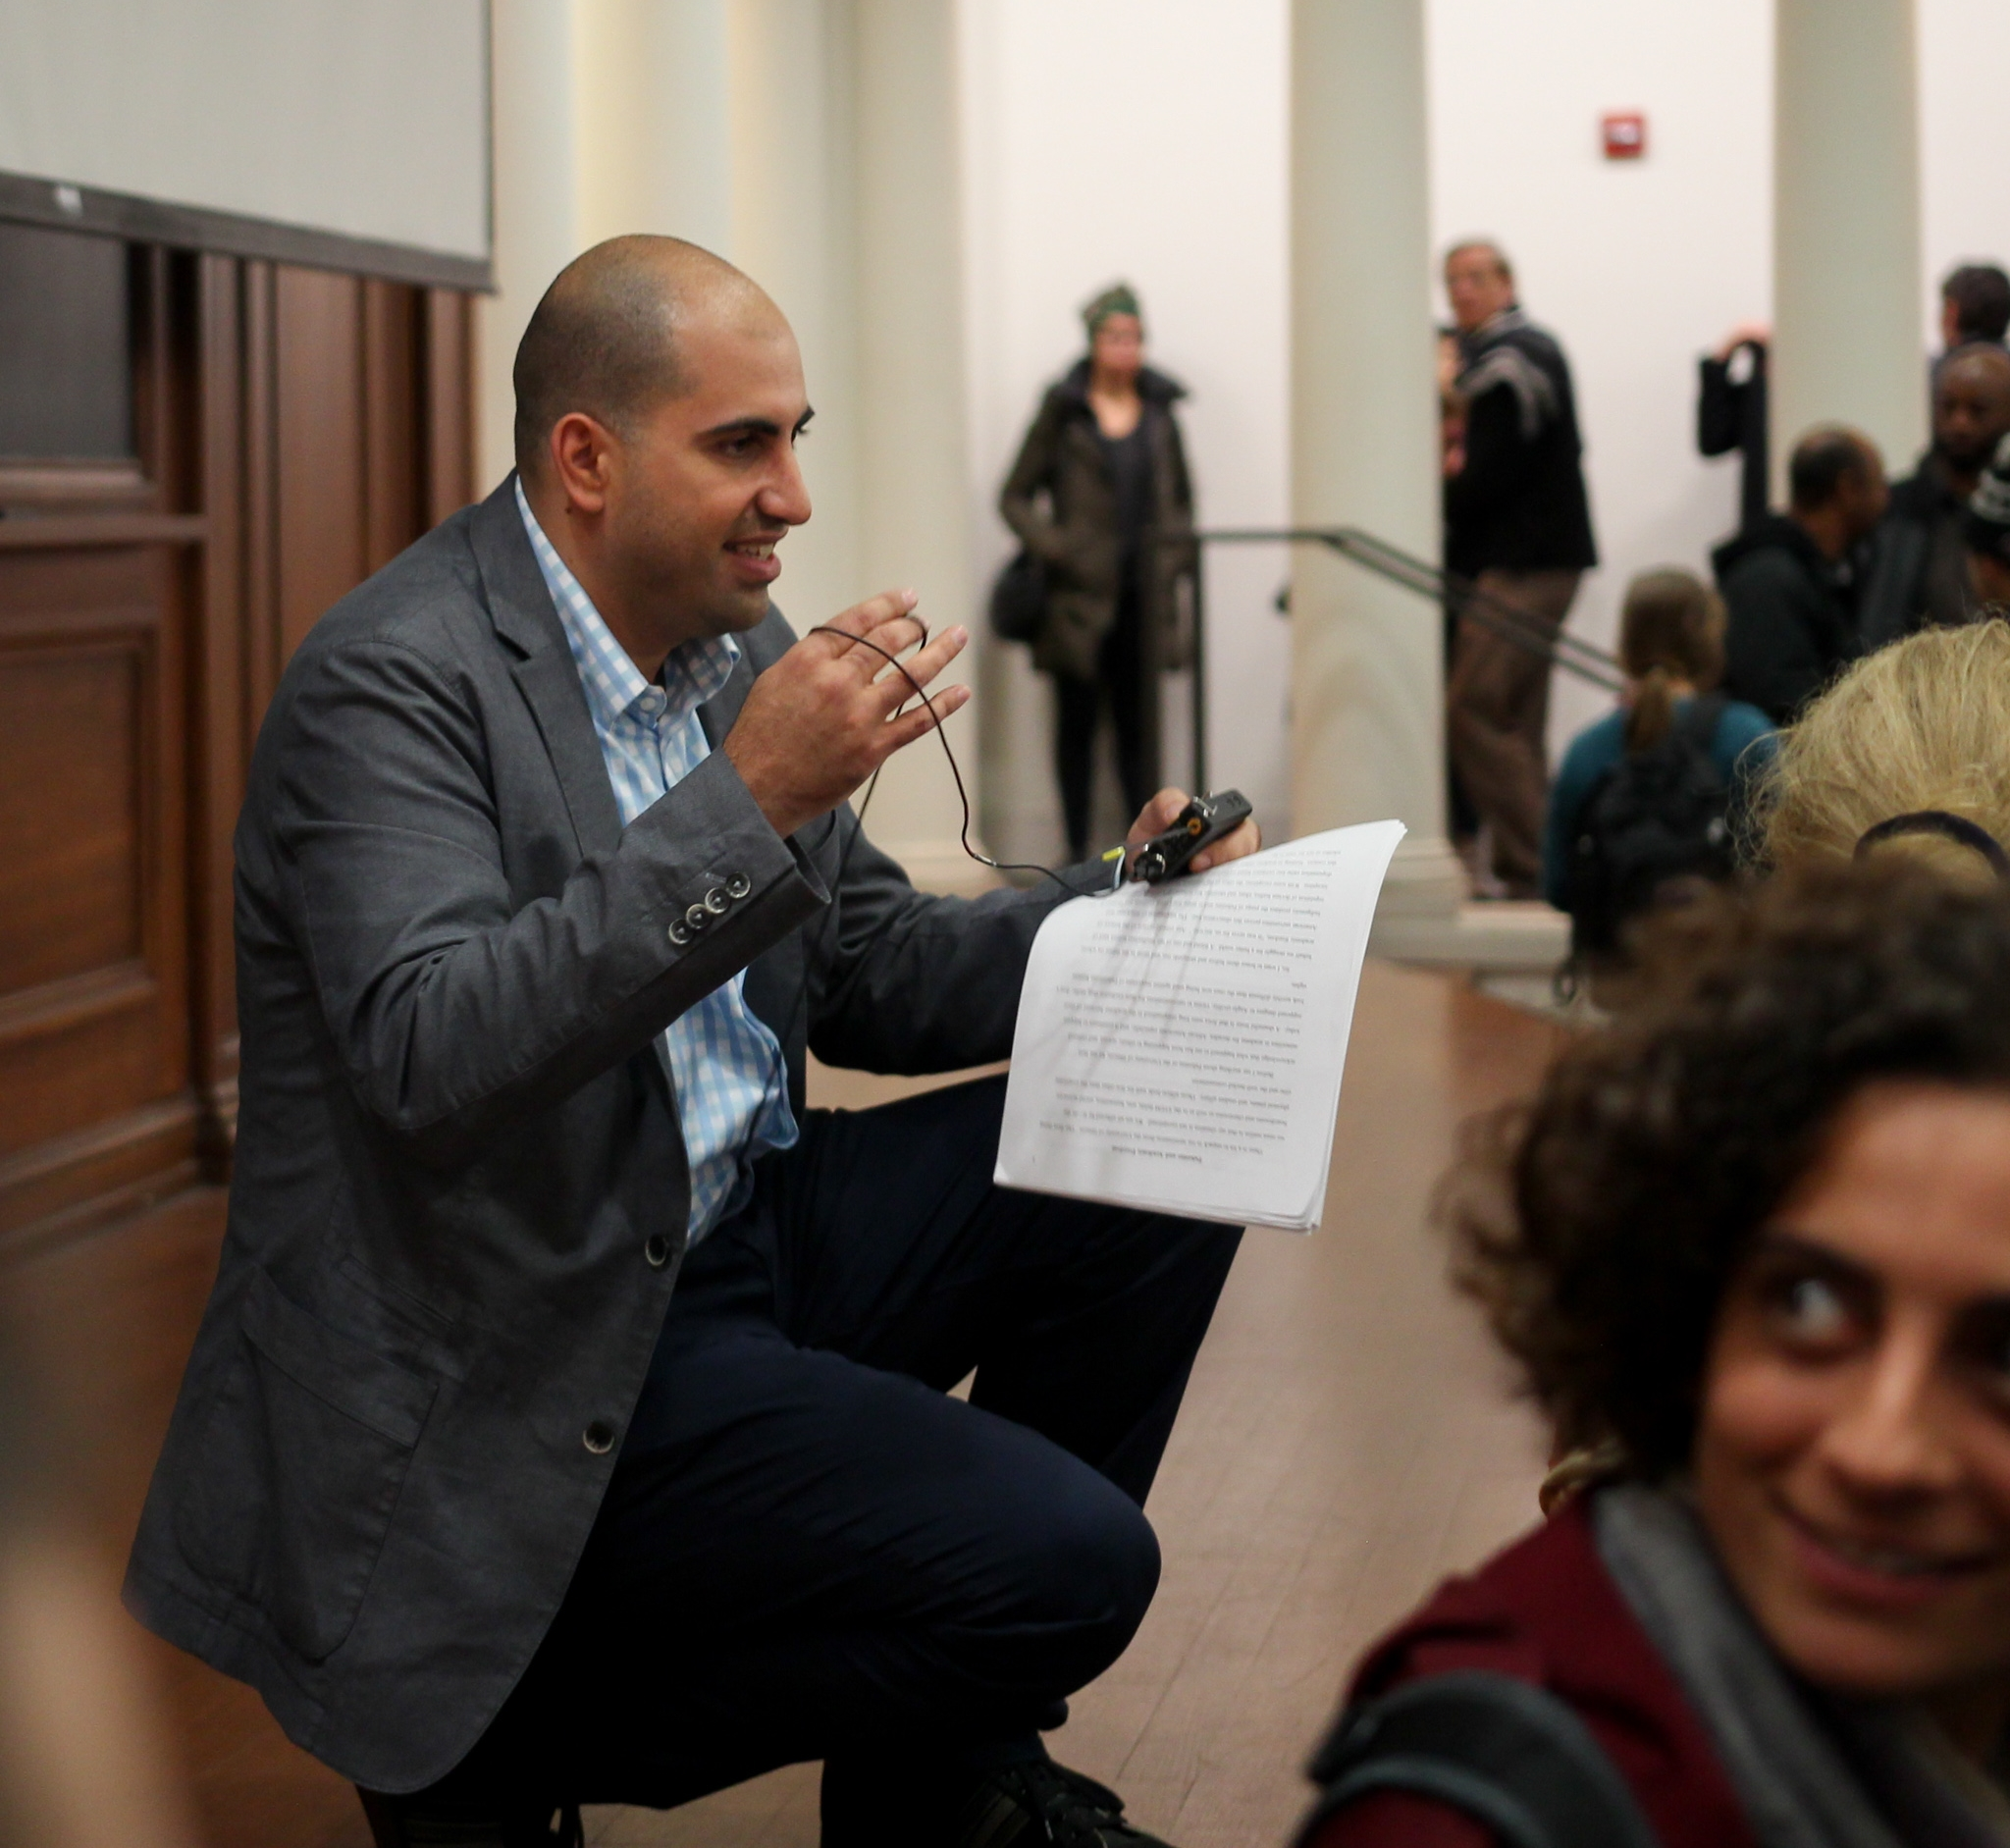 The University of Illinois at Urbana-Champaign dismissed Professor Steven Salaita from a tenured faculty position for his personal tweets about Israel's assault on Gaza in 2014. (Jeffrey Putney)